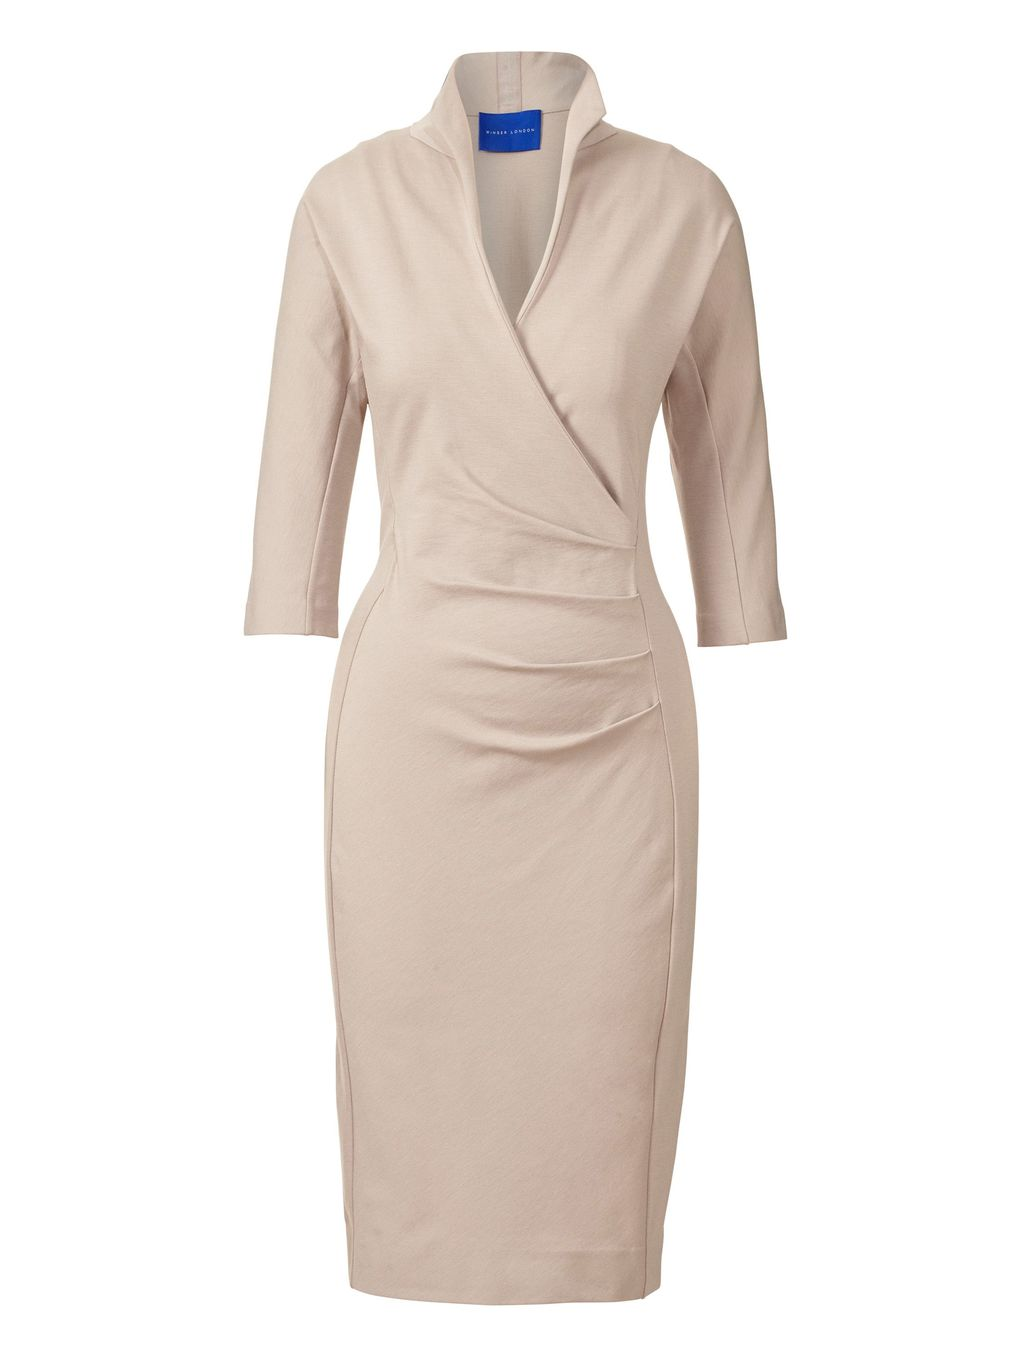 Grace Miracle Dress, Beige - style: shift; length: below the knee; neckline: v-neck; fit: tailored/fitted; pattern: plain; predominant colour: stone; fibres: viscose/rayon - stretch; occasions: occasion; sleeve length: 3/4 length; sleeve style: standard; pattern type: fabric; texture group: jersey - stretchy/drapey; season: s/s 2016; wardrobe: event